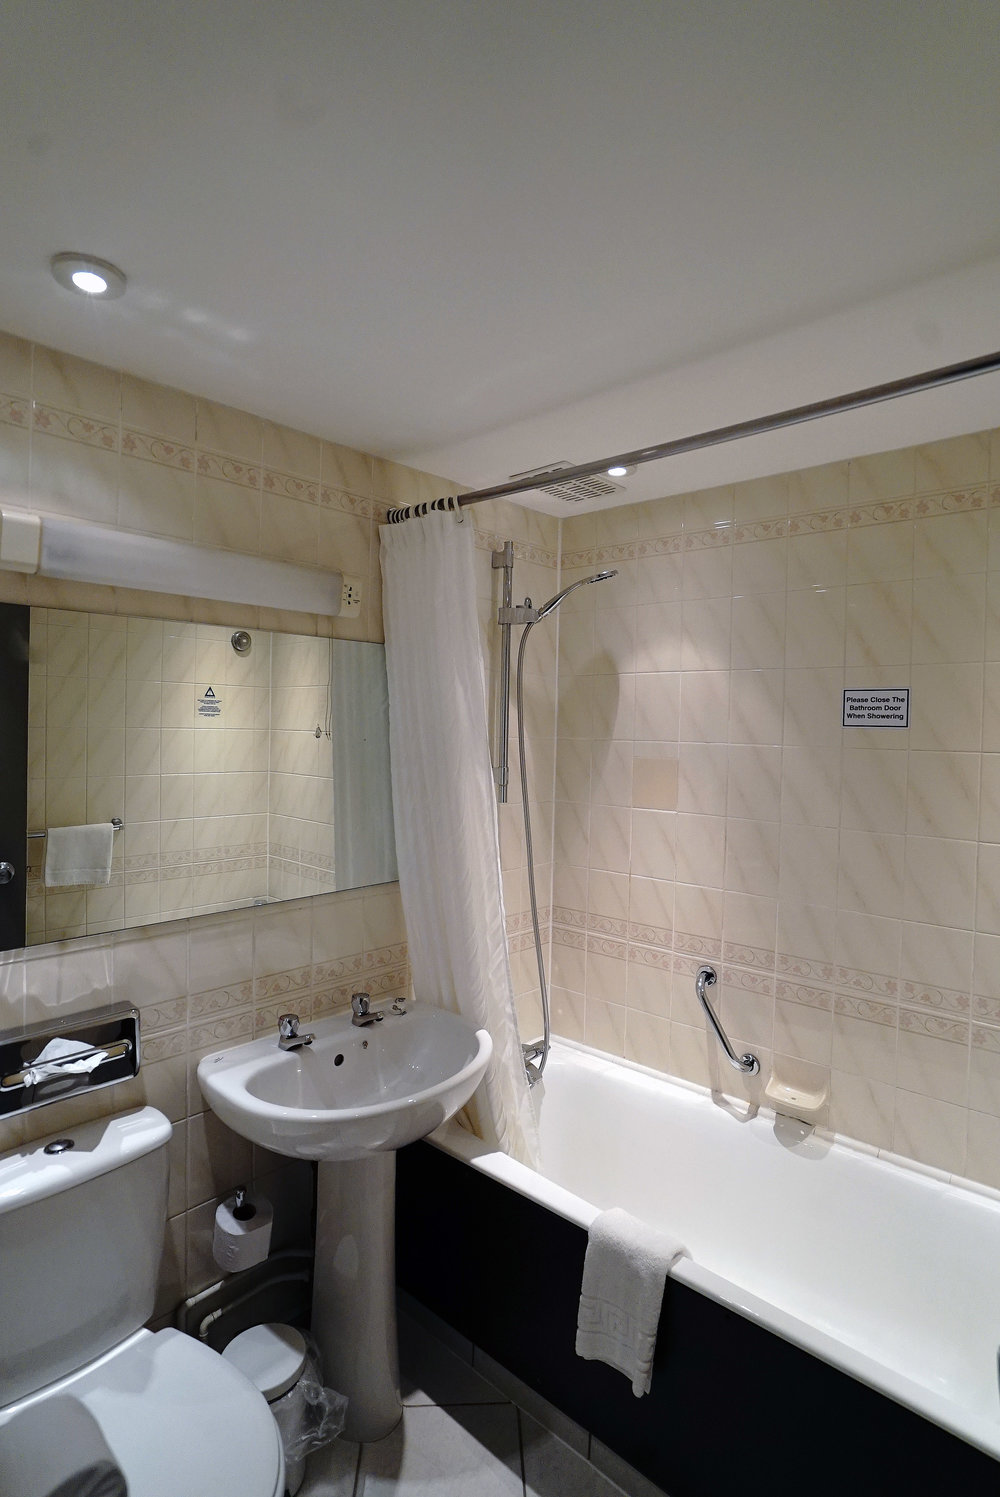 Mercure Perth Bathroom.jpg